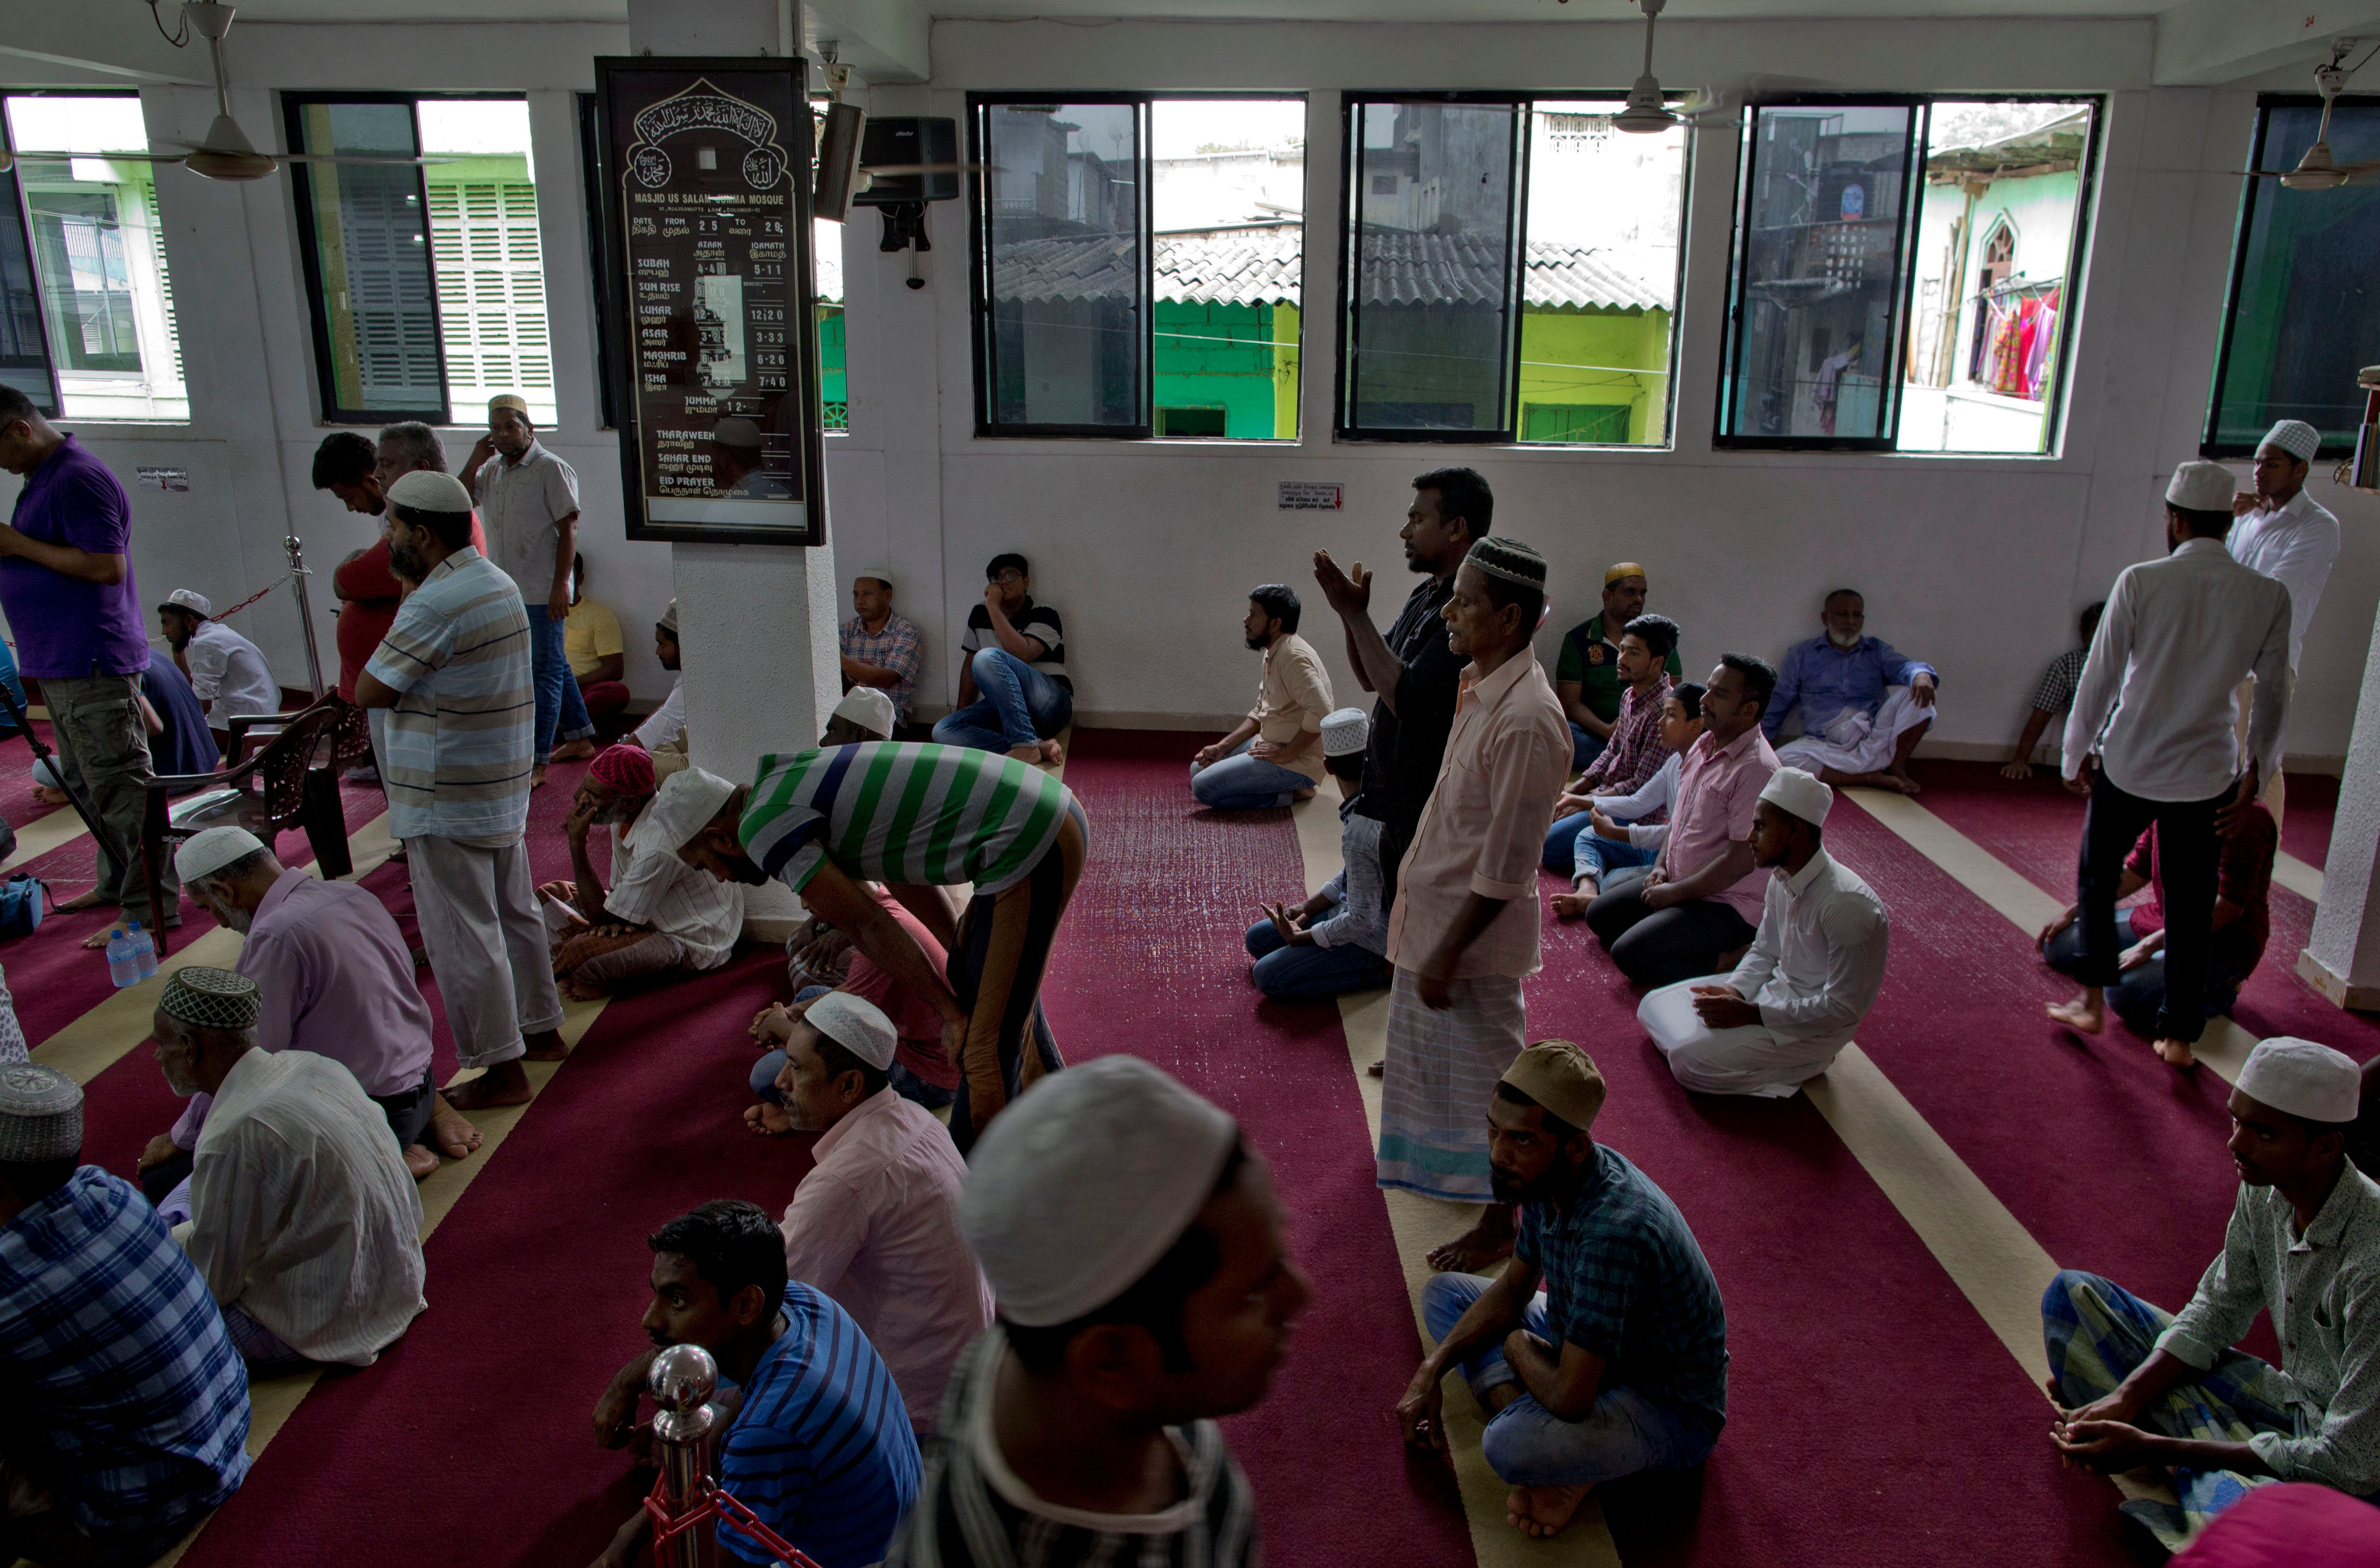 Muslim men gather to pray at a mosque in Colombo, Sri Lanka, Friday, April 26, 2019. Hundreds gathered at mosques that conducted Friday prayer services despite warnings of more bomb attacks by Islamic State-claimed militants. And while praying through tears to Allah to help their fellow countrymen, all stressed one thing. The Easter attacks targeting churches and hotels that killed at least 250 people came from people who didn't truly believe the teachings of Islam. (AP Photo/Gemunu Amarasinghe)